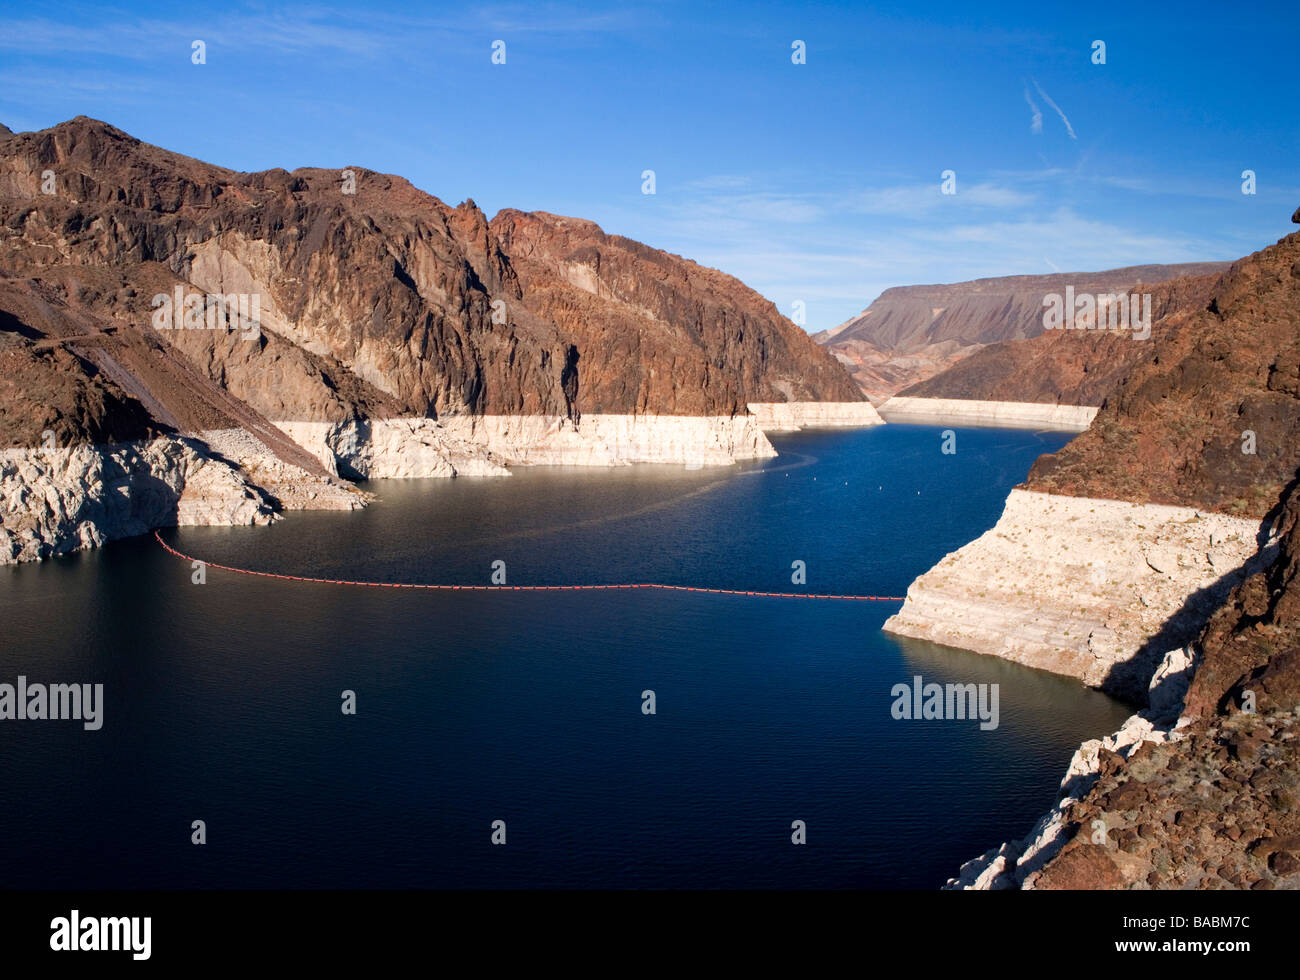 Lake Mead reservoir at the hoover dam, Nevada, USA Stock Photo